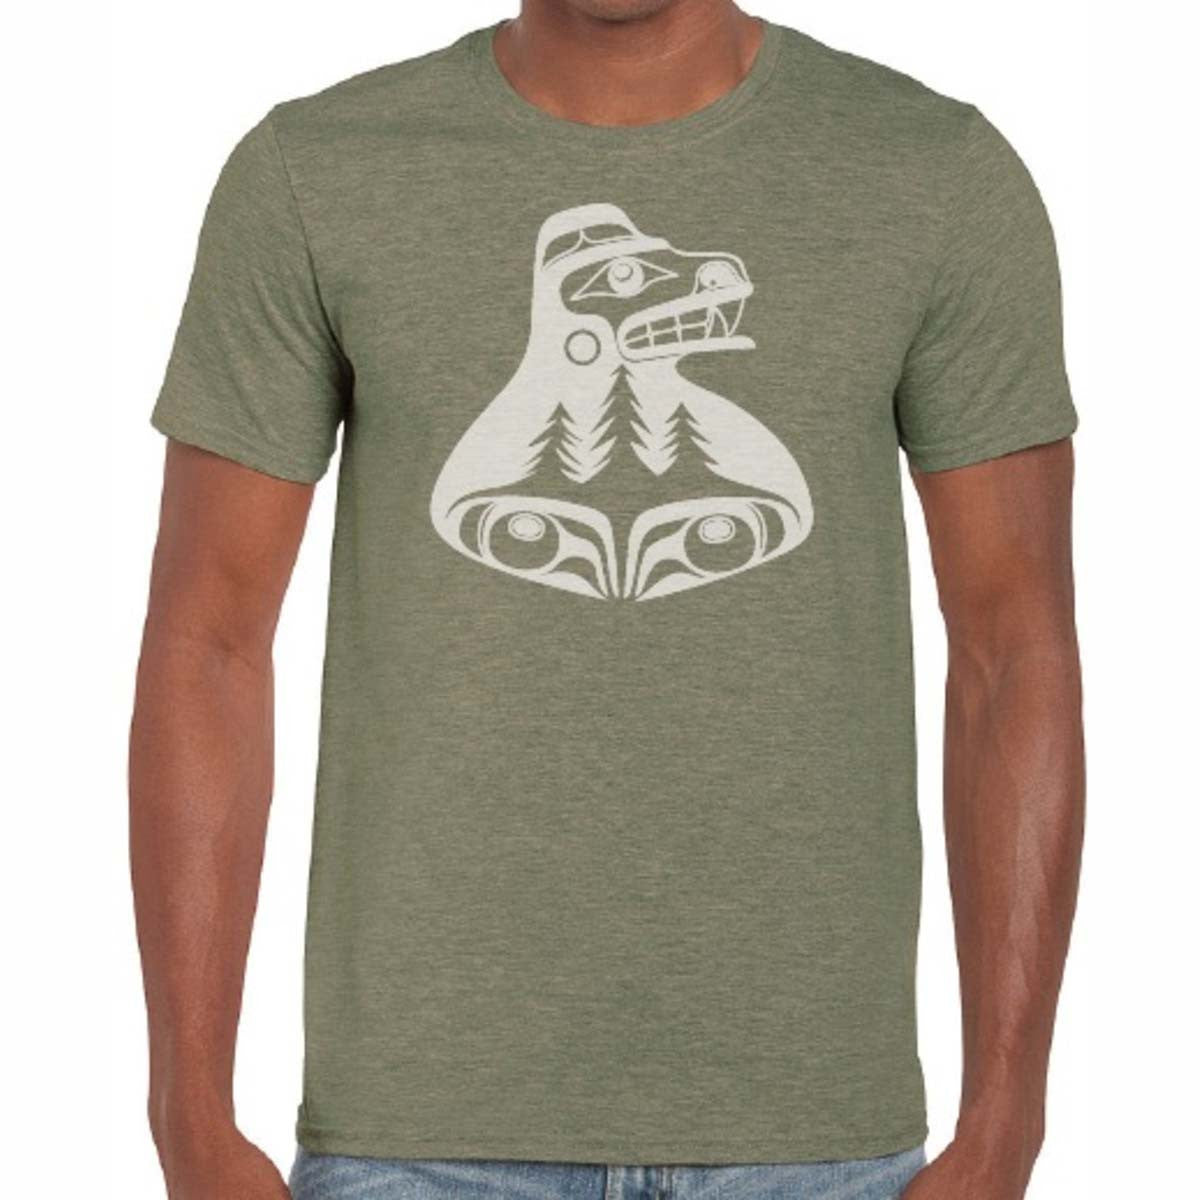 t-shirt alan weir haida bear tree hugger cotton t-shirt cool t-shirt perfect gift unique gift